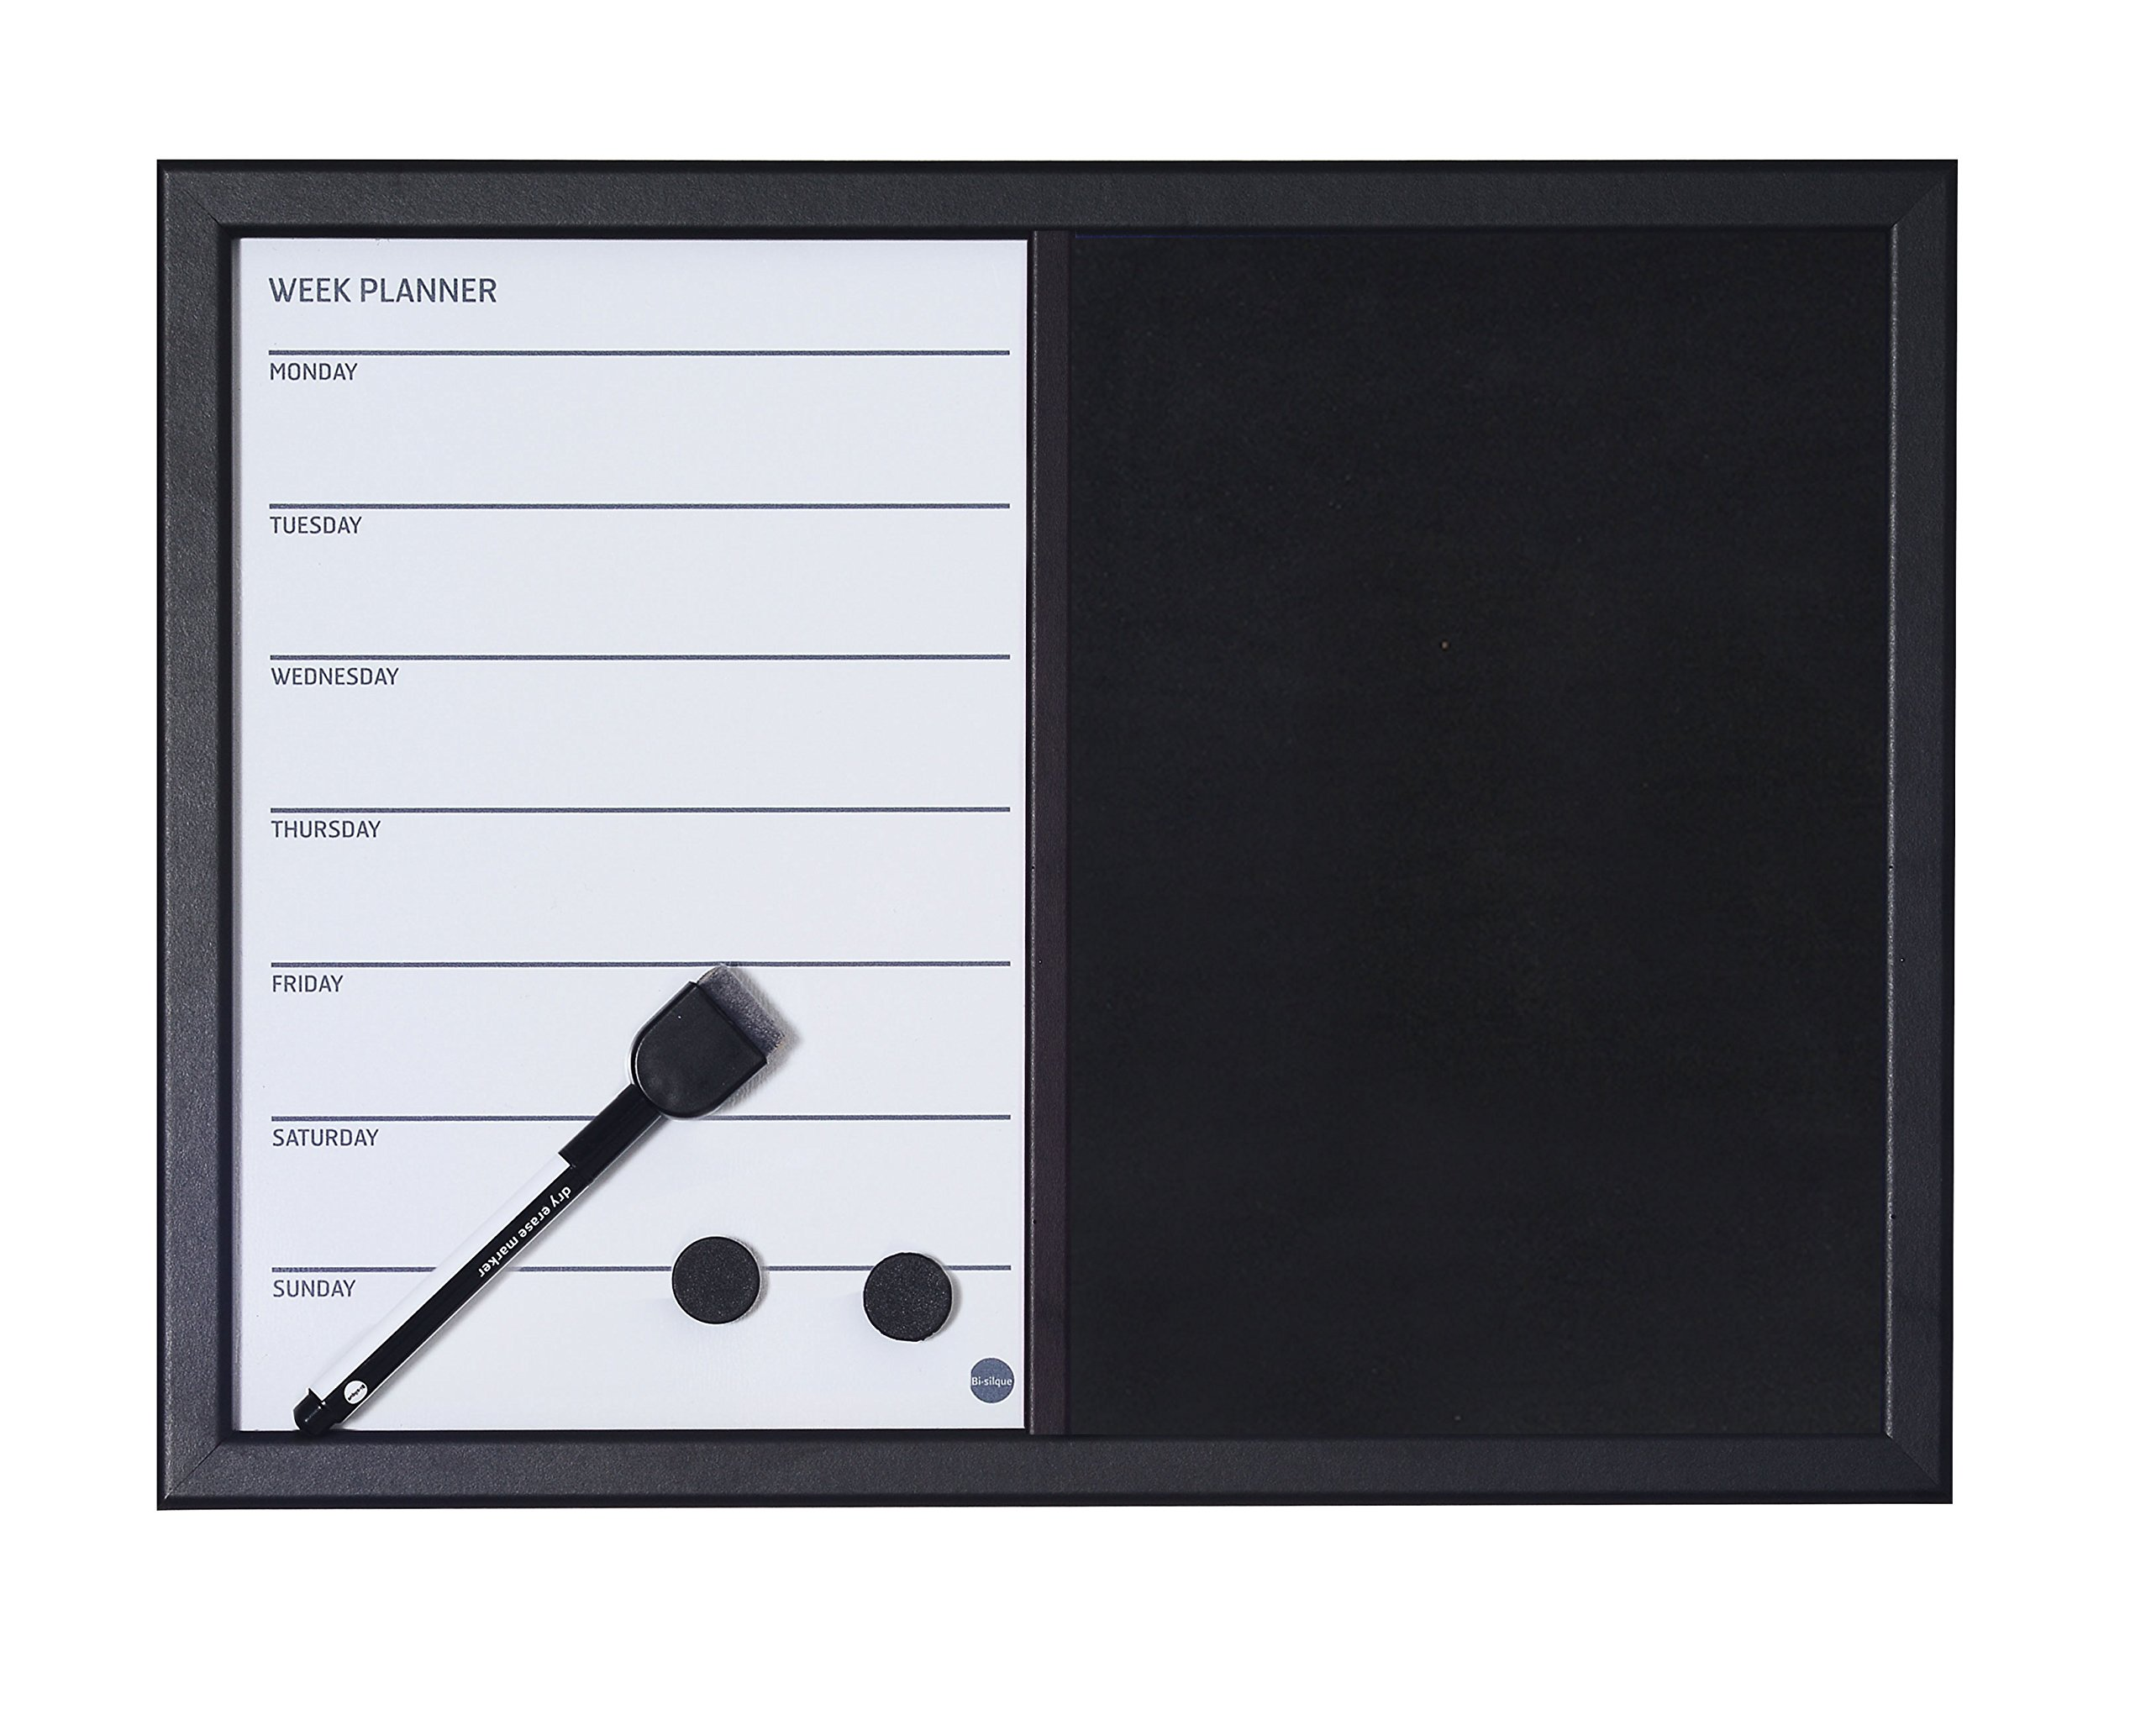 MasterVision Combo Magnetic Week Planner Dry Erase and Black Felt Board, Black Frame, 18 x 24 Inches (MX04445161)